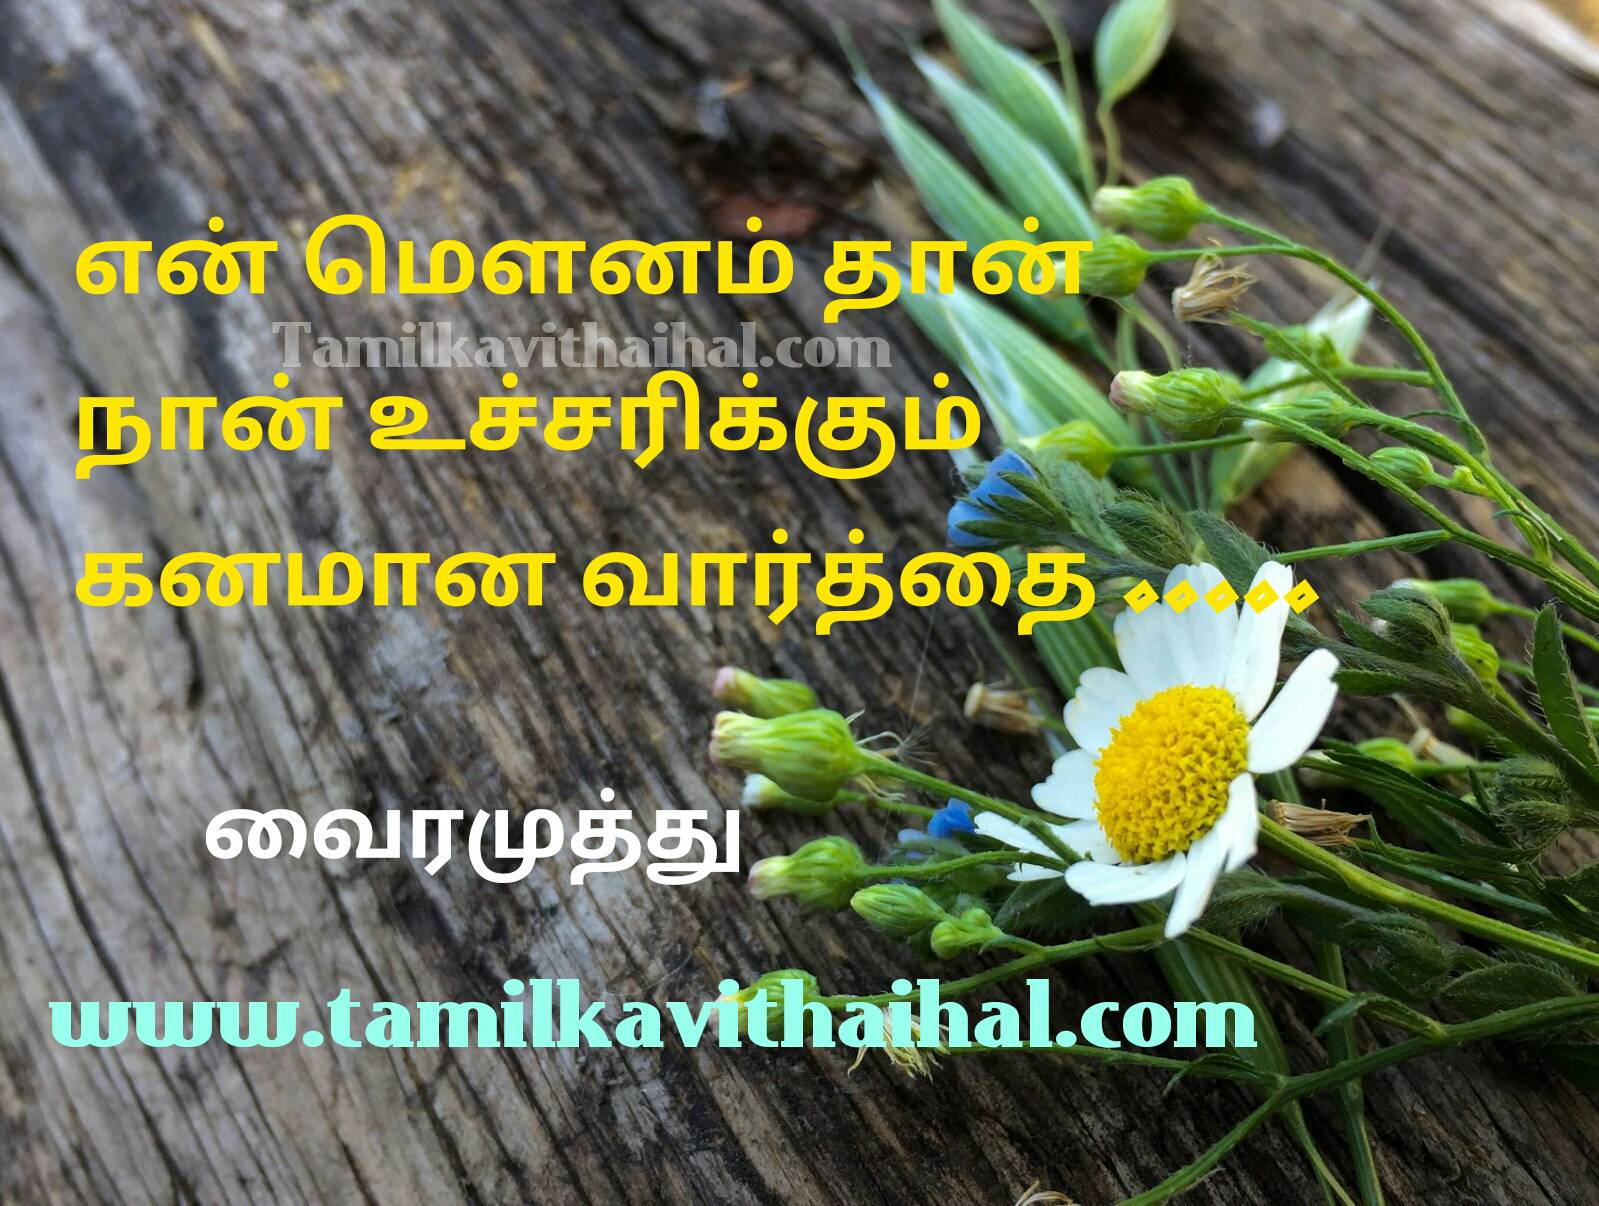 Best tamil vairamuthu kavithaigal beautiful love life poem mounam kanam vaarthai vali idhayam hd image wallpaper